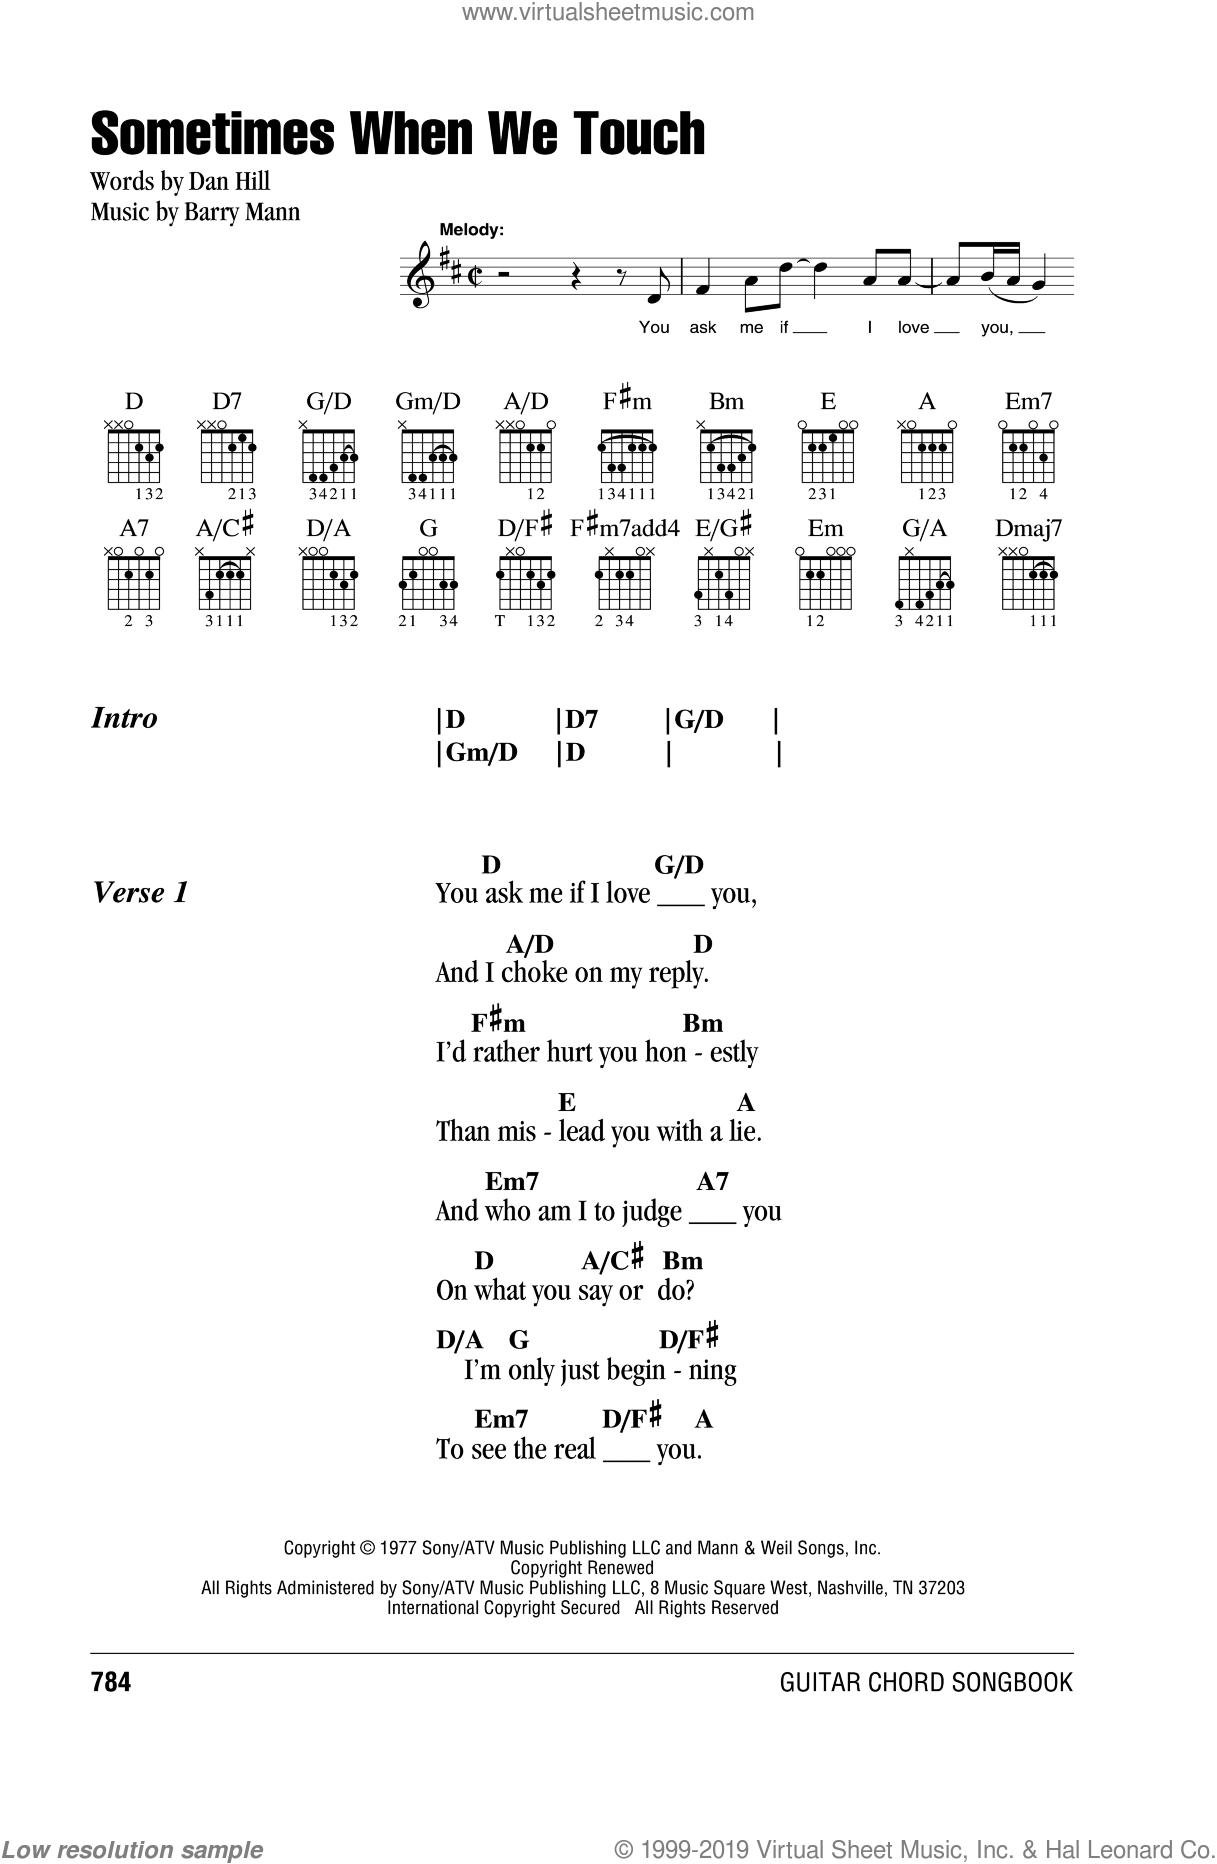 Sometimes When We Touch sheet music for guitar (chords) by Dan Hill and Barry Mann, wedding score, intermediate. Score Image Preview.